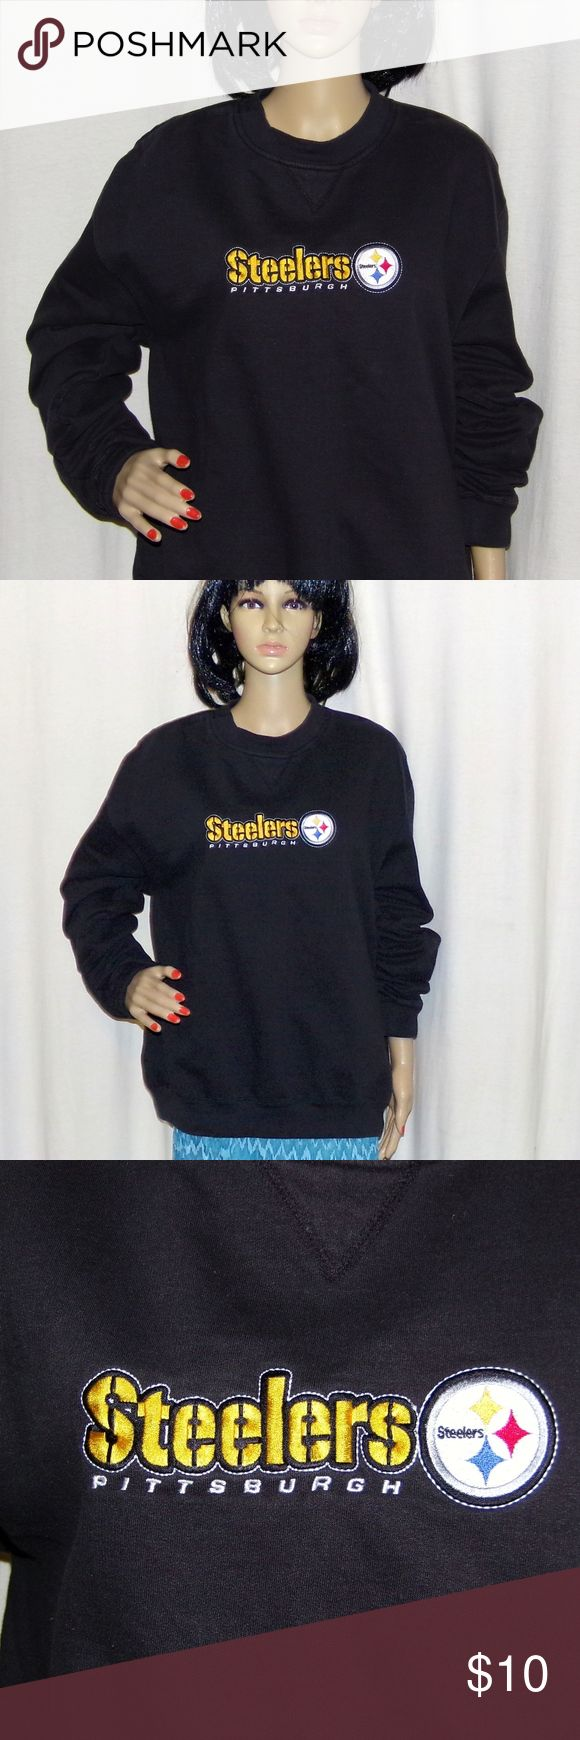 """Pittsburgh Steelers Sweatshirt Embroidered Pittsburgh Steelers Sweatshirt. Embroidered Vintage sweatshirt NFL Size L LOW & Fast Shipping. Really nice sweatshirt in fact one of the nicest one's I've ever seen. It is embroidered and in very good vintage condition. It was a very expensive shirt. NFL Brand This was a top of the line item. MEASUREMENTS: Size is L (Large)  Length-26""""/Chest-48-50""""/Sleeve-23""""  For Reference our Model  Measurements are. 32-24-33 BUNDLE 2 or more of our items 2 SAVE…"""